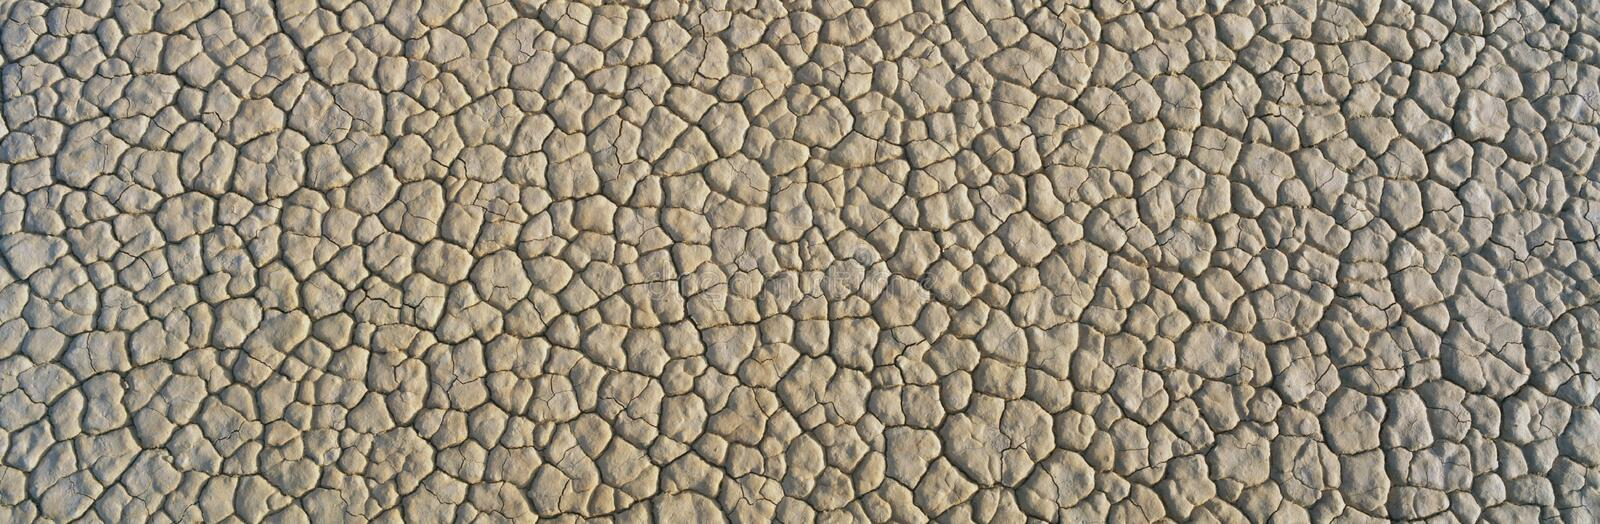 Dried mud in Death Valley National Park. This is the cracked and dry mud from a dried lake. It forms a pattern. This is located in Death Valley National Park stock image